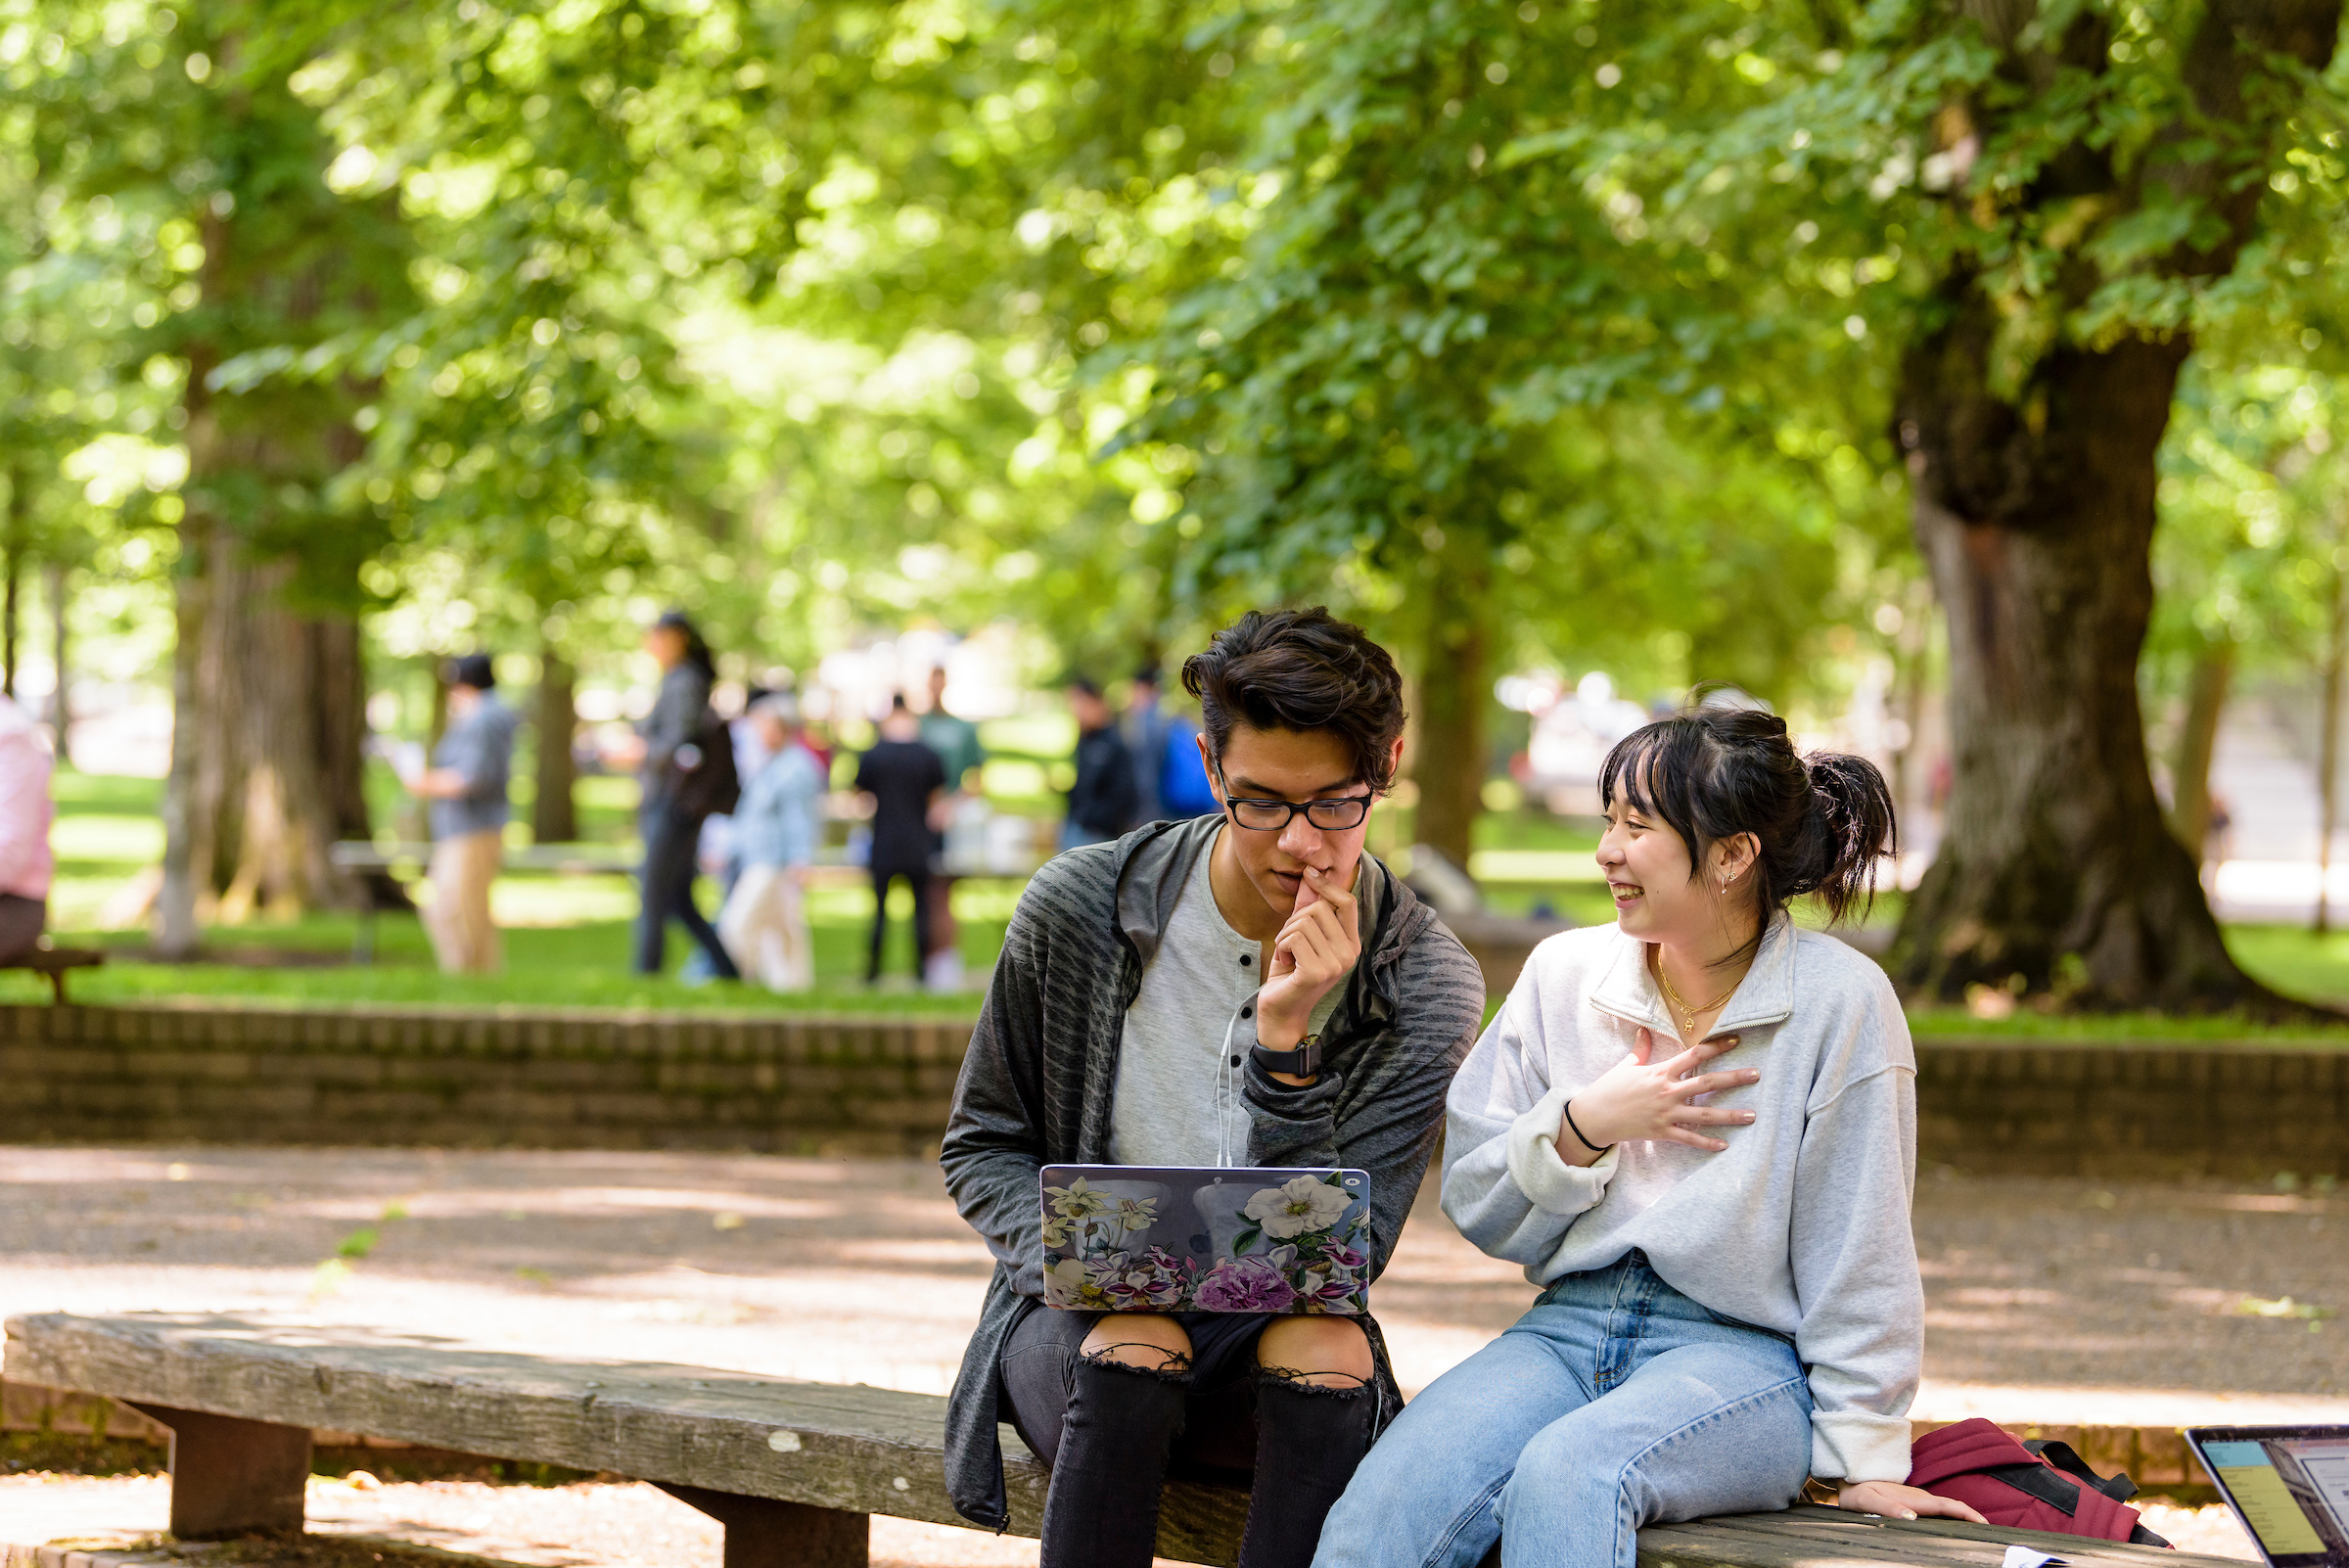 Two PSU Online students working on a laptop in a park